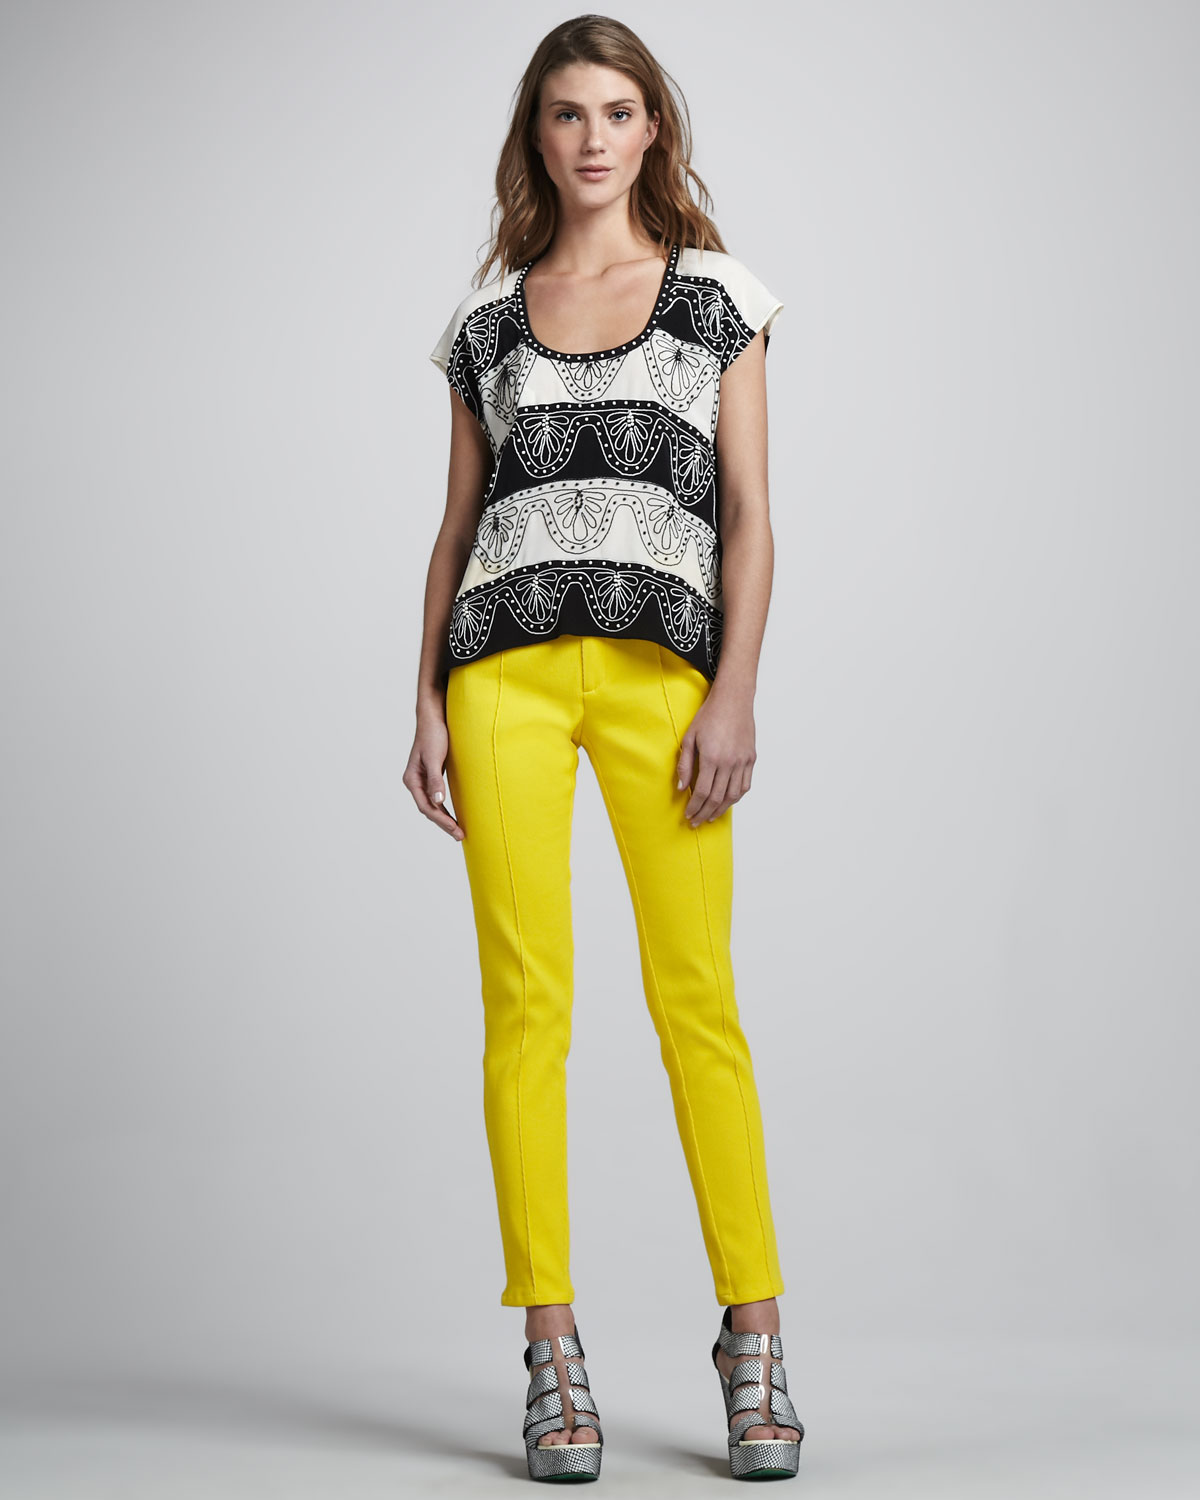 Nanette Lepore Roundup Skinny Pants \u0026amp; Two Step Embroidered Top